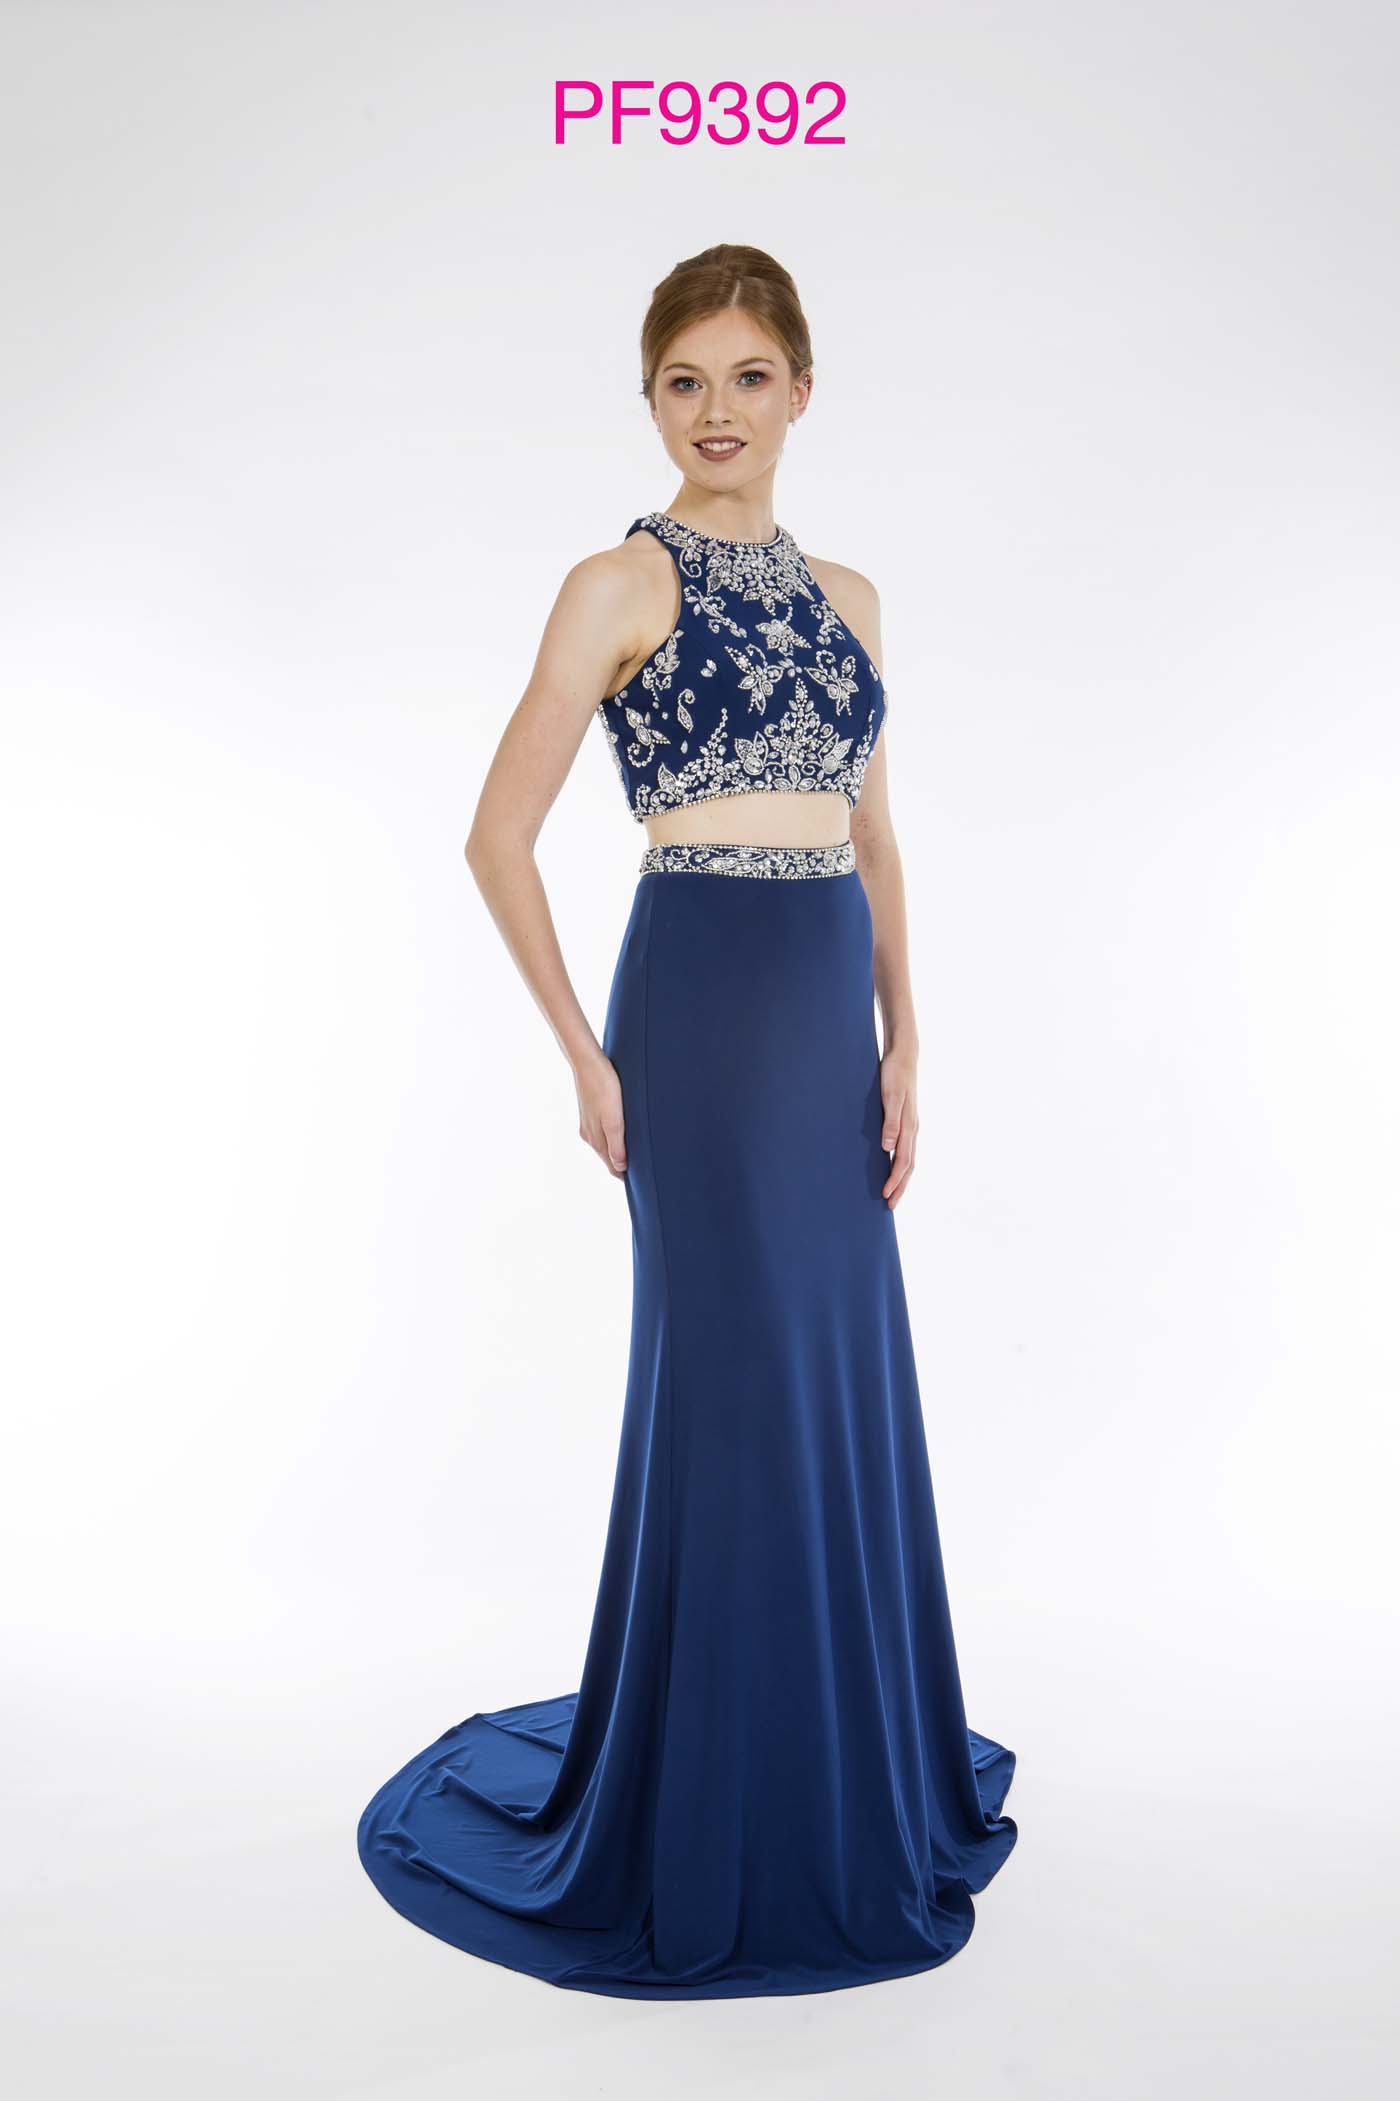 Prom girl wearing navy jersey 2 piece gown with silver beaded top and figure hugging skirt with train